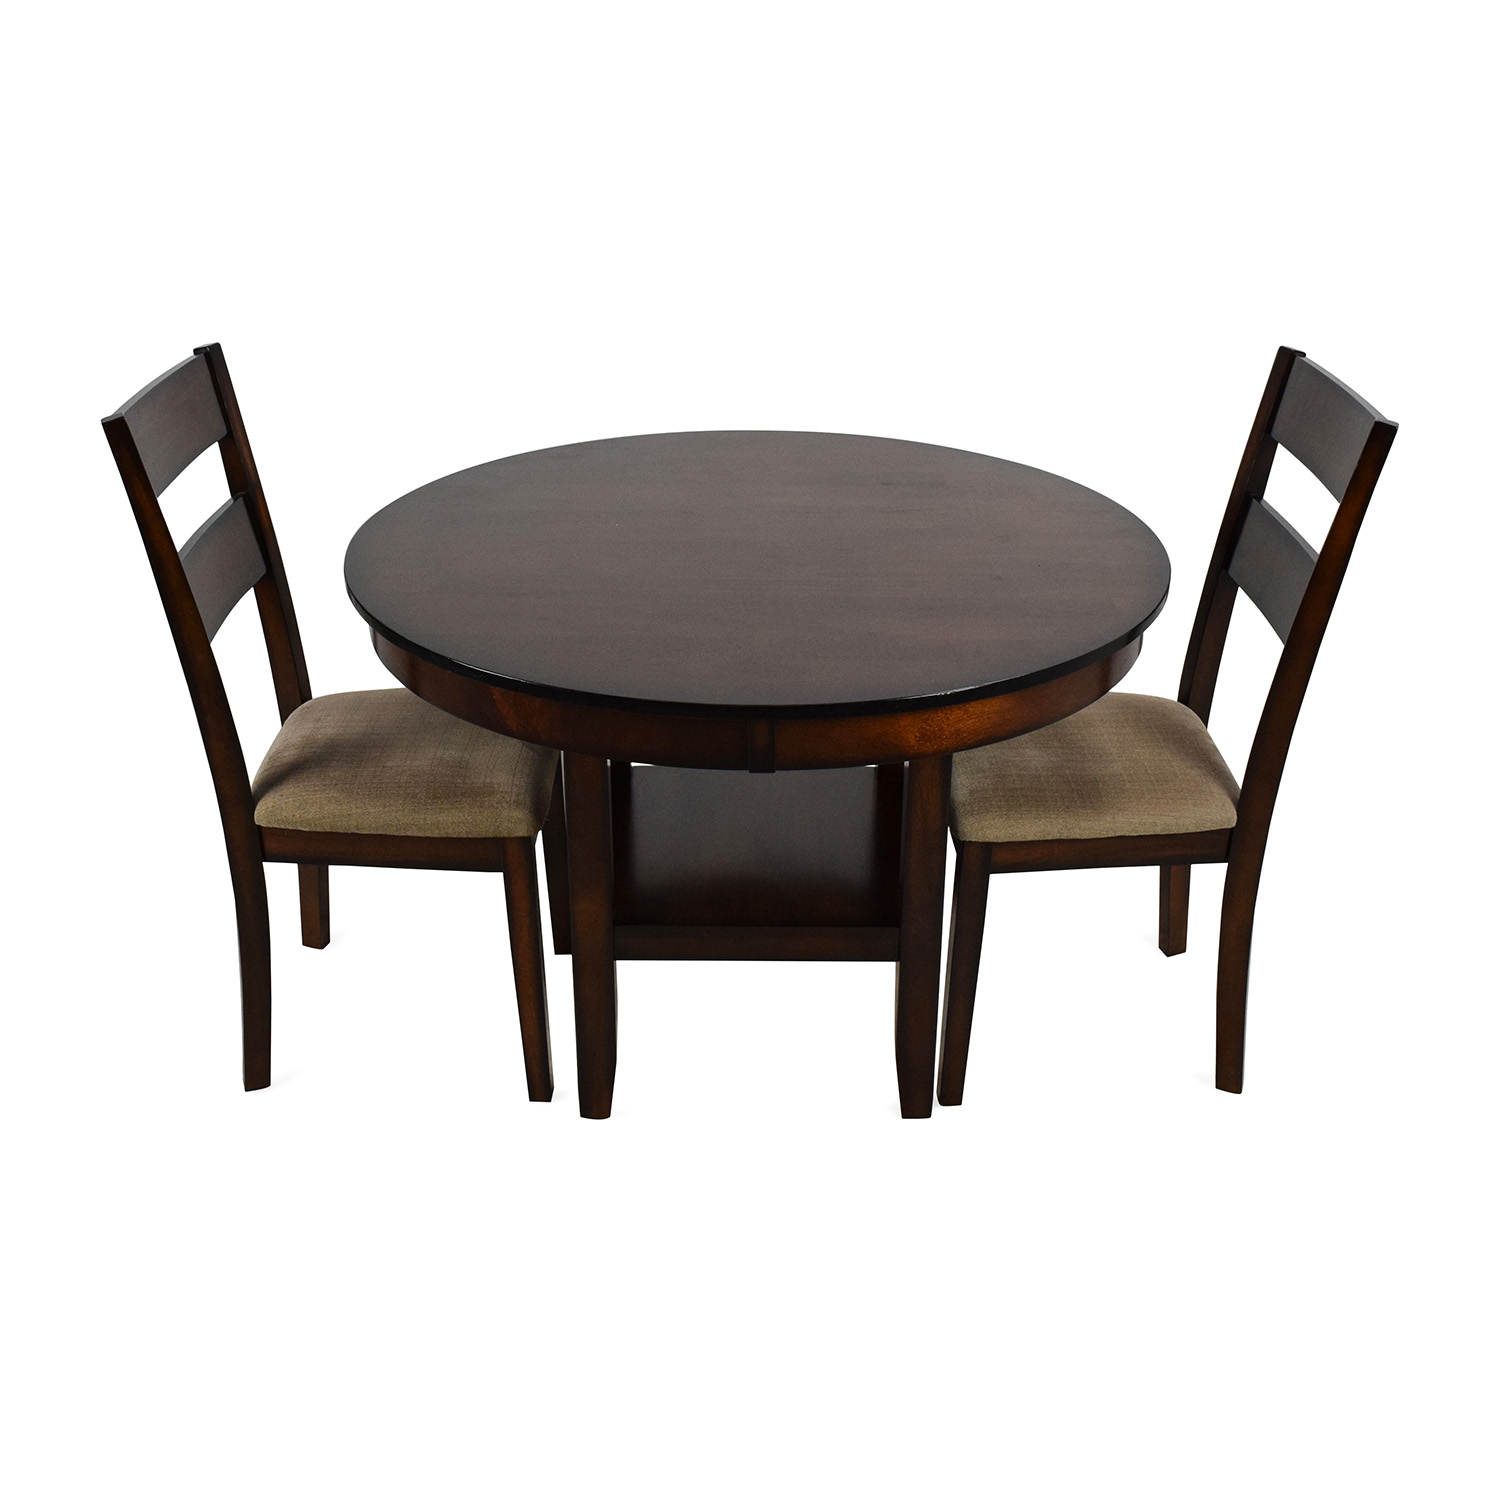 85 Off Macy S Macy S Branton 3 Piece Dining Room Collection Tables